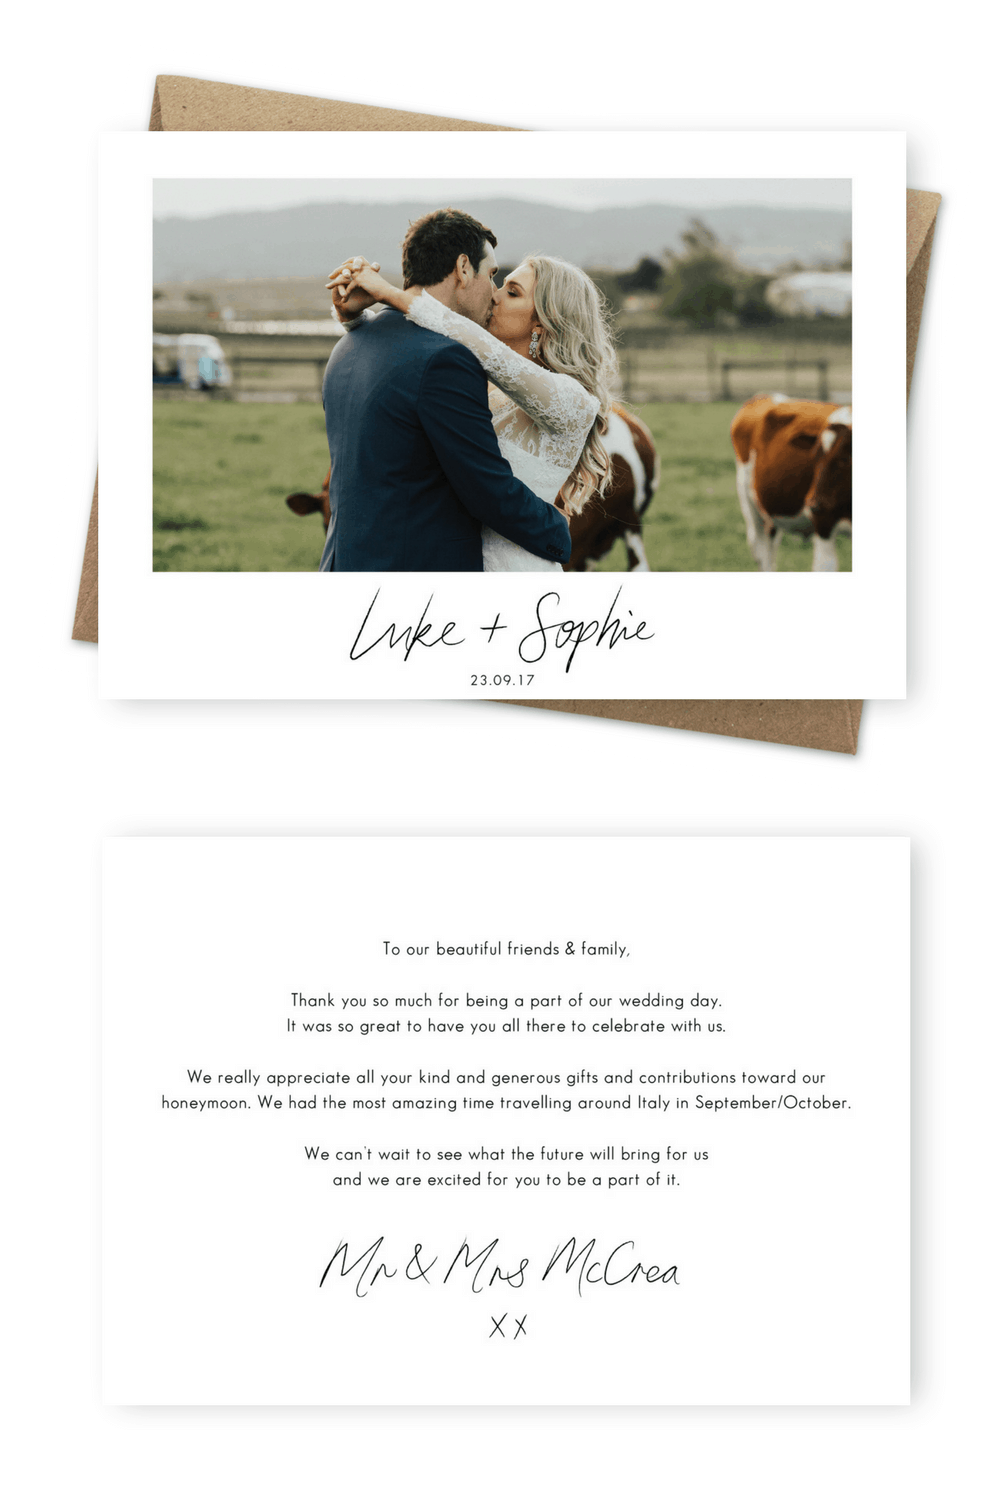 Wedding Thank You Card Wording Examples How To Write Message For The Love